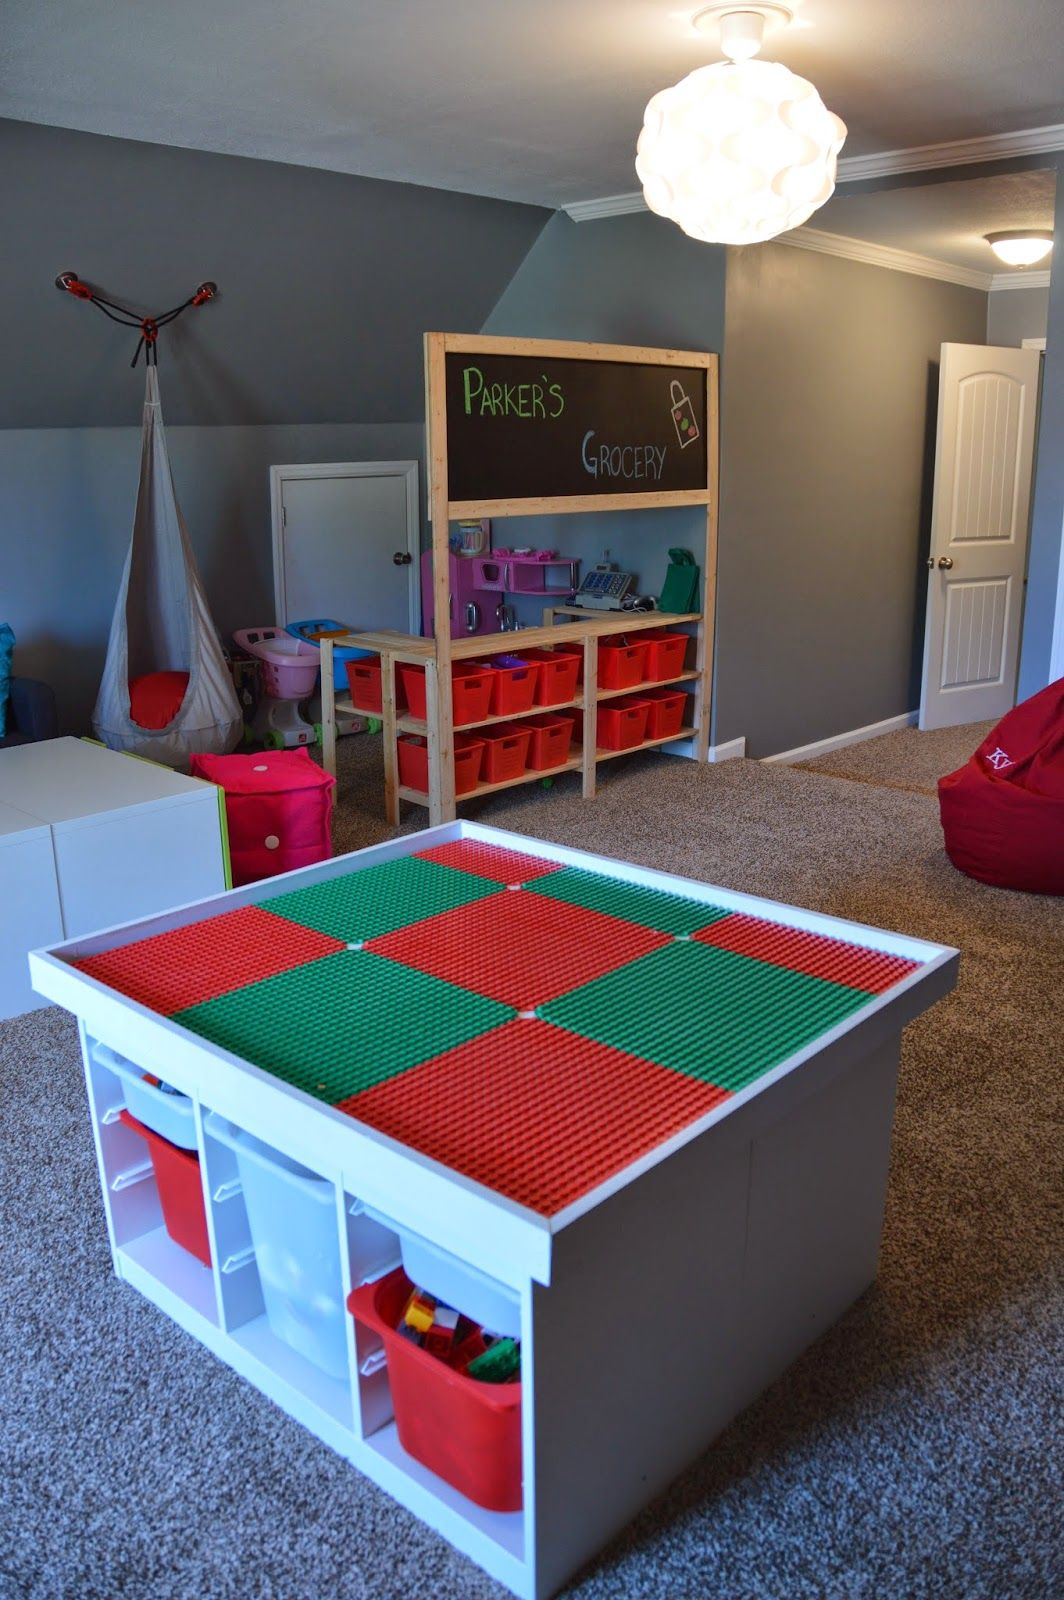 Ikea Diy Ikea Diy Lego Table And Grocery Store Pretend Play My